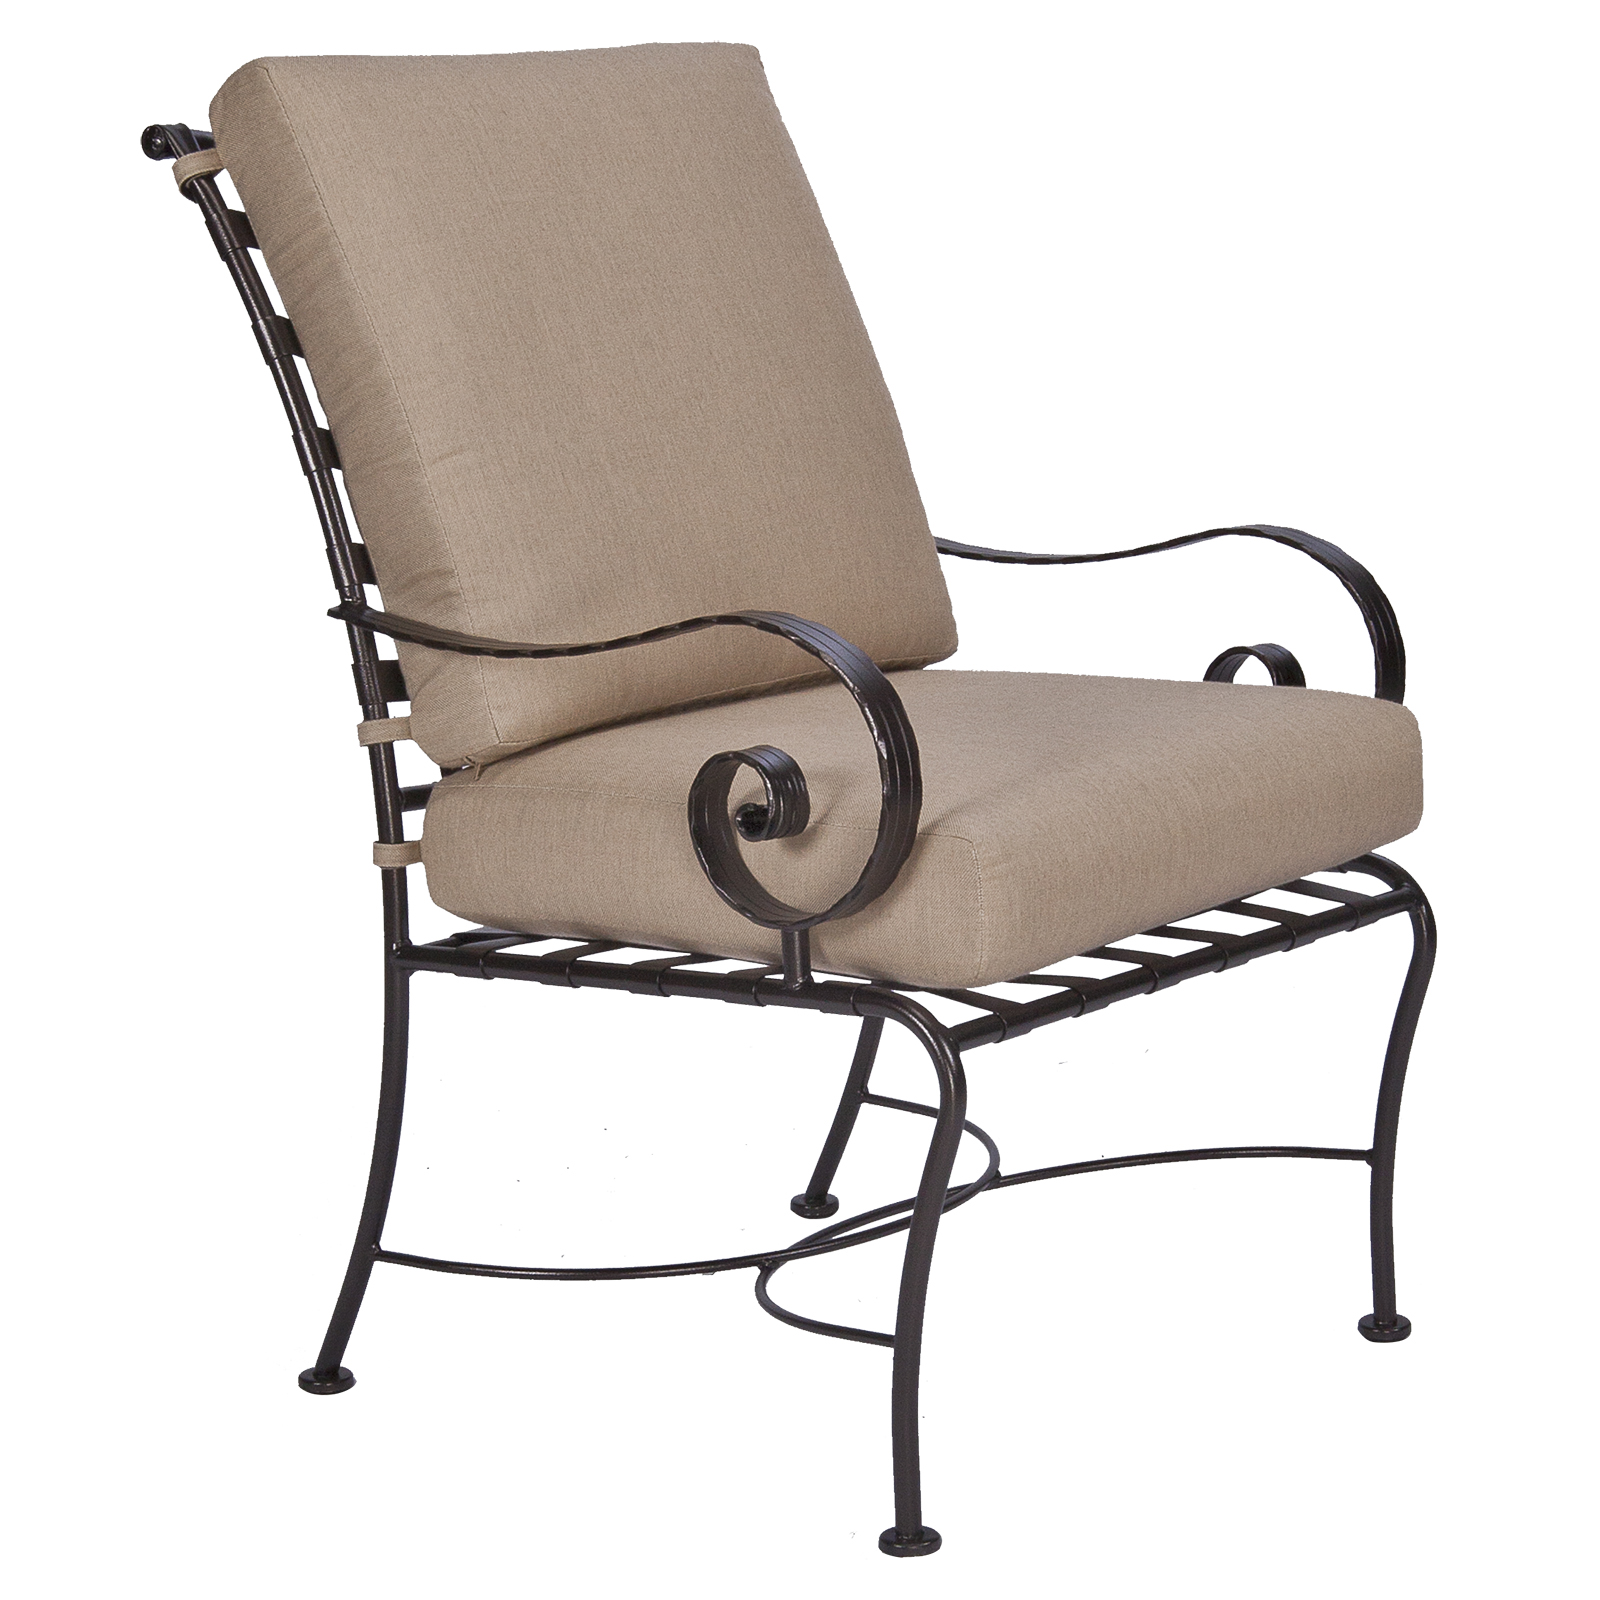 Club-Dining-Arm-Chair-942-AW_Catalog_-GR35_1600-Classico-W-OW-Lee